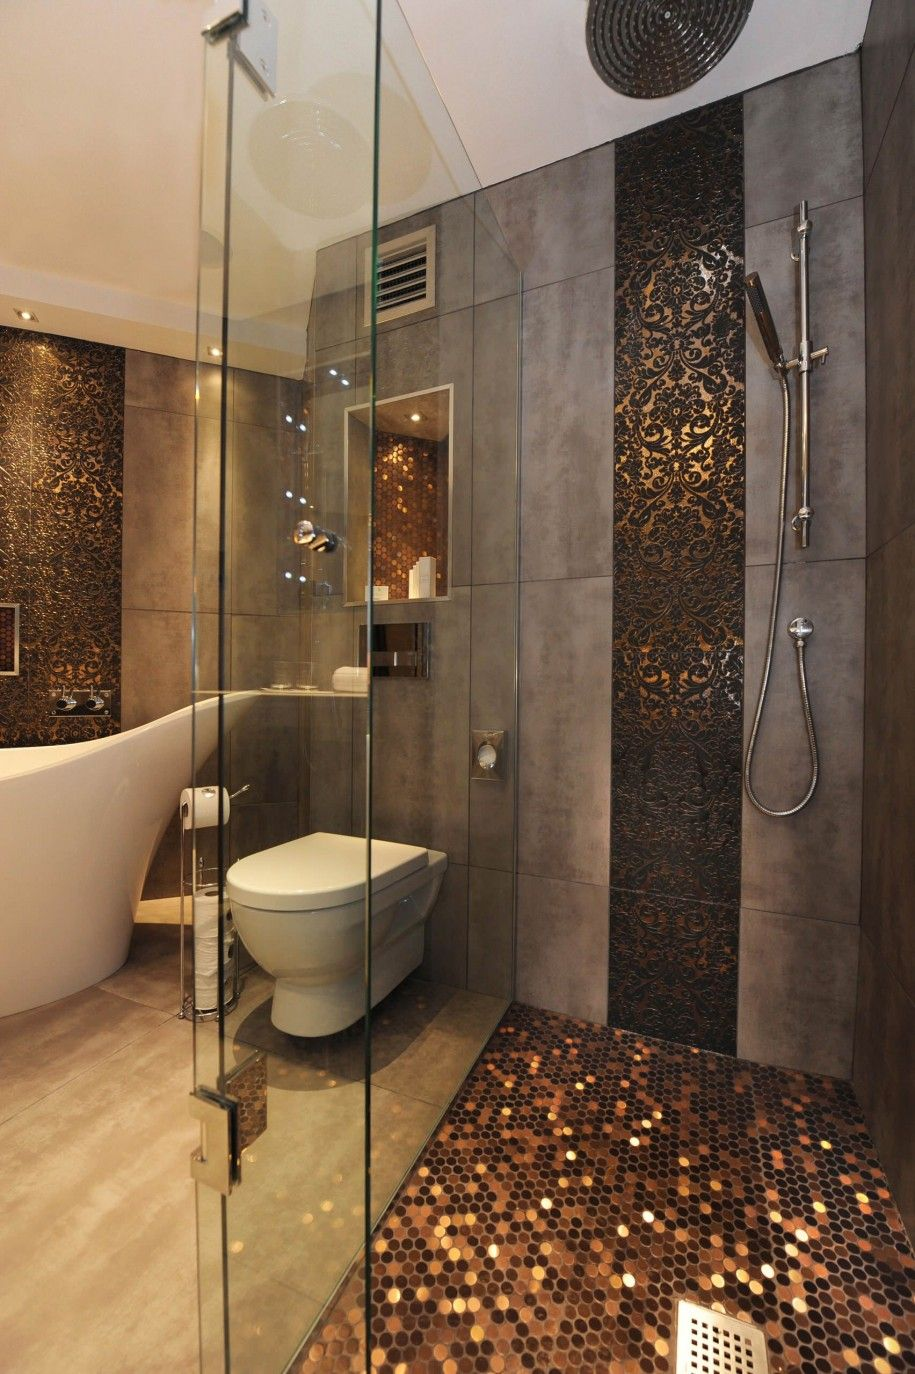 Tile over tub tiles and mosaic tiles as bathroom floor tile hmm copper pennies are a very inexpensive floor goes very well with the long slabs of stone tile dailygadgetfo Image collections